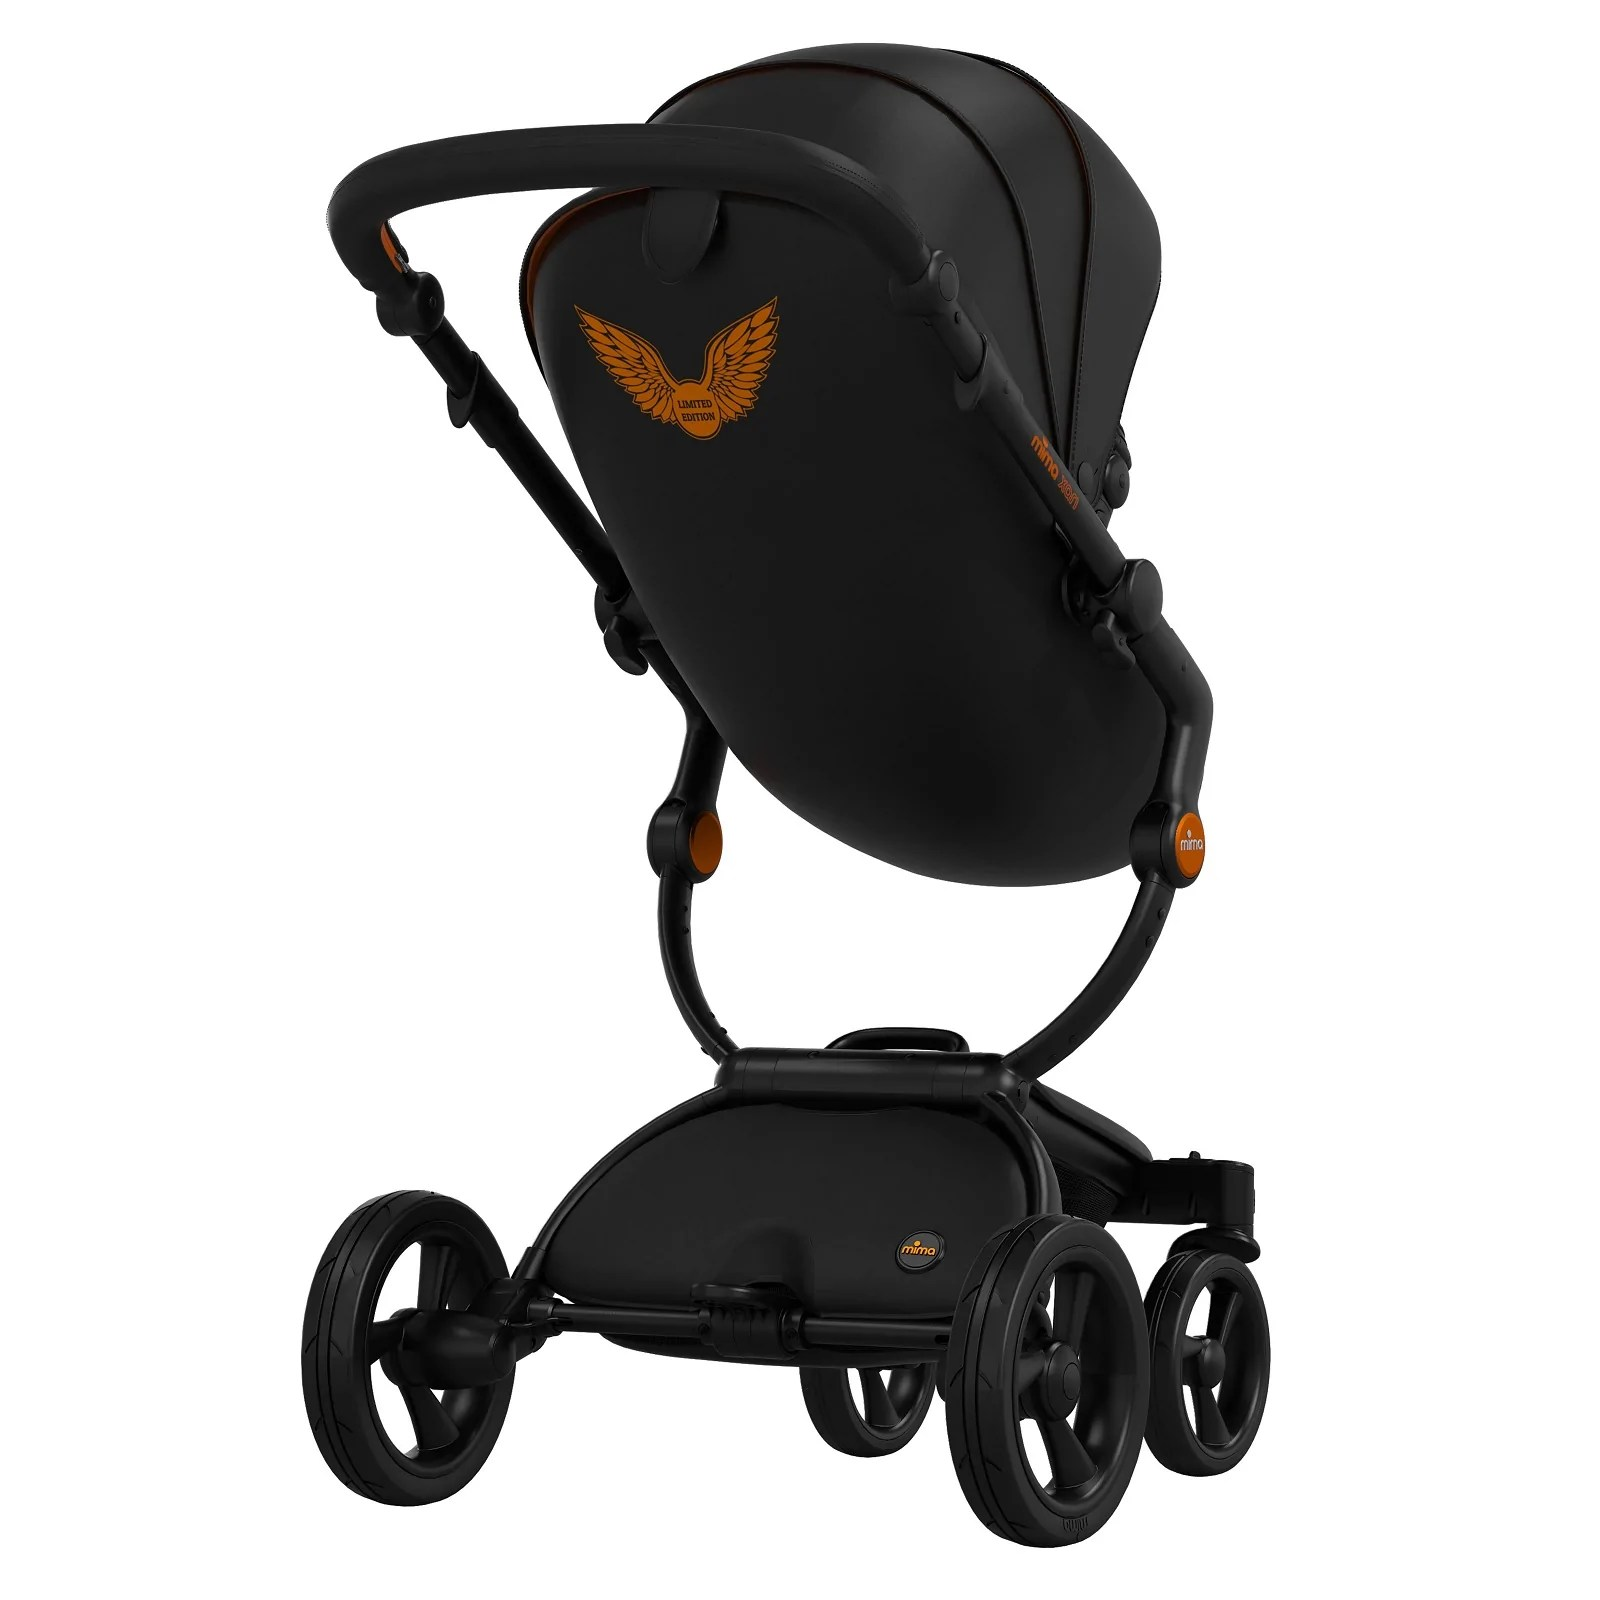 Mima Xari Seat Box 2 Snow-white Mima Xari Rebel Orange Limited Edition Stroller Bundle